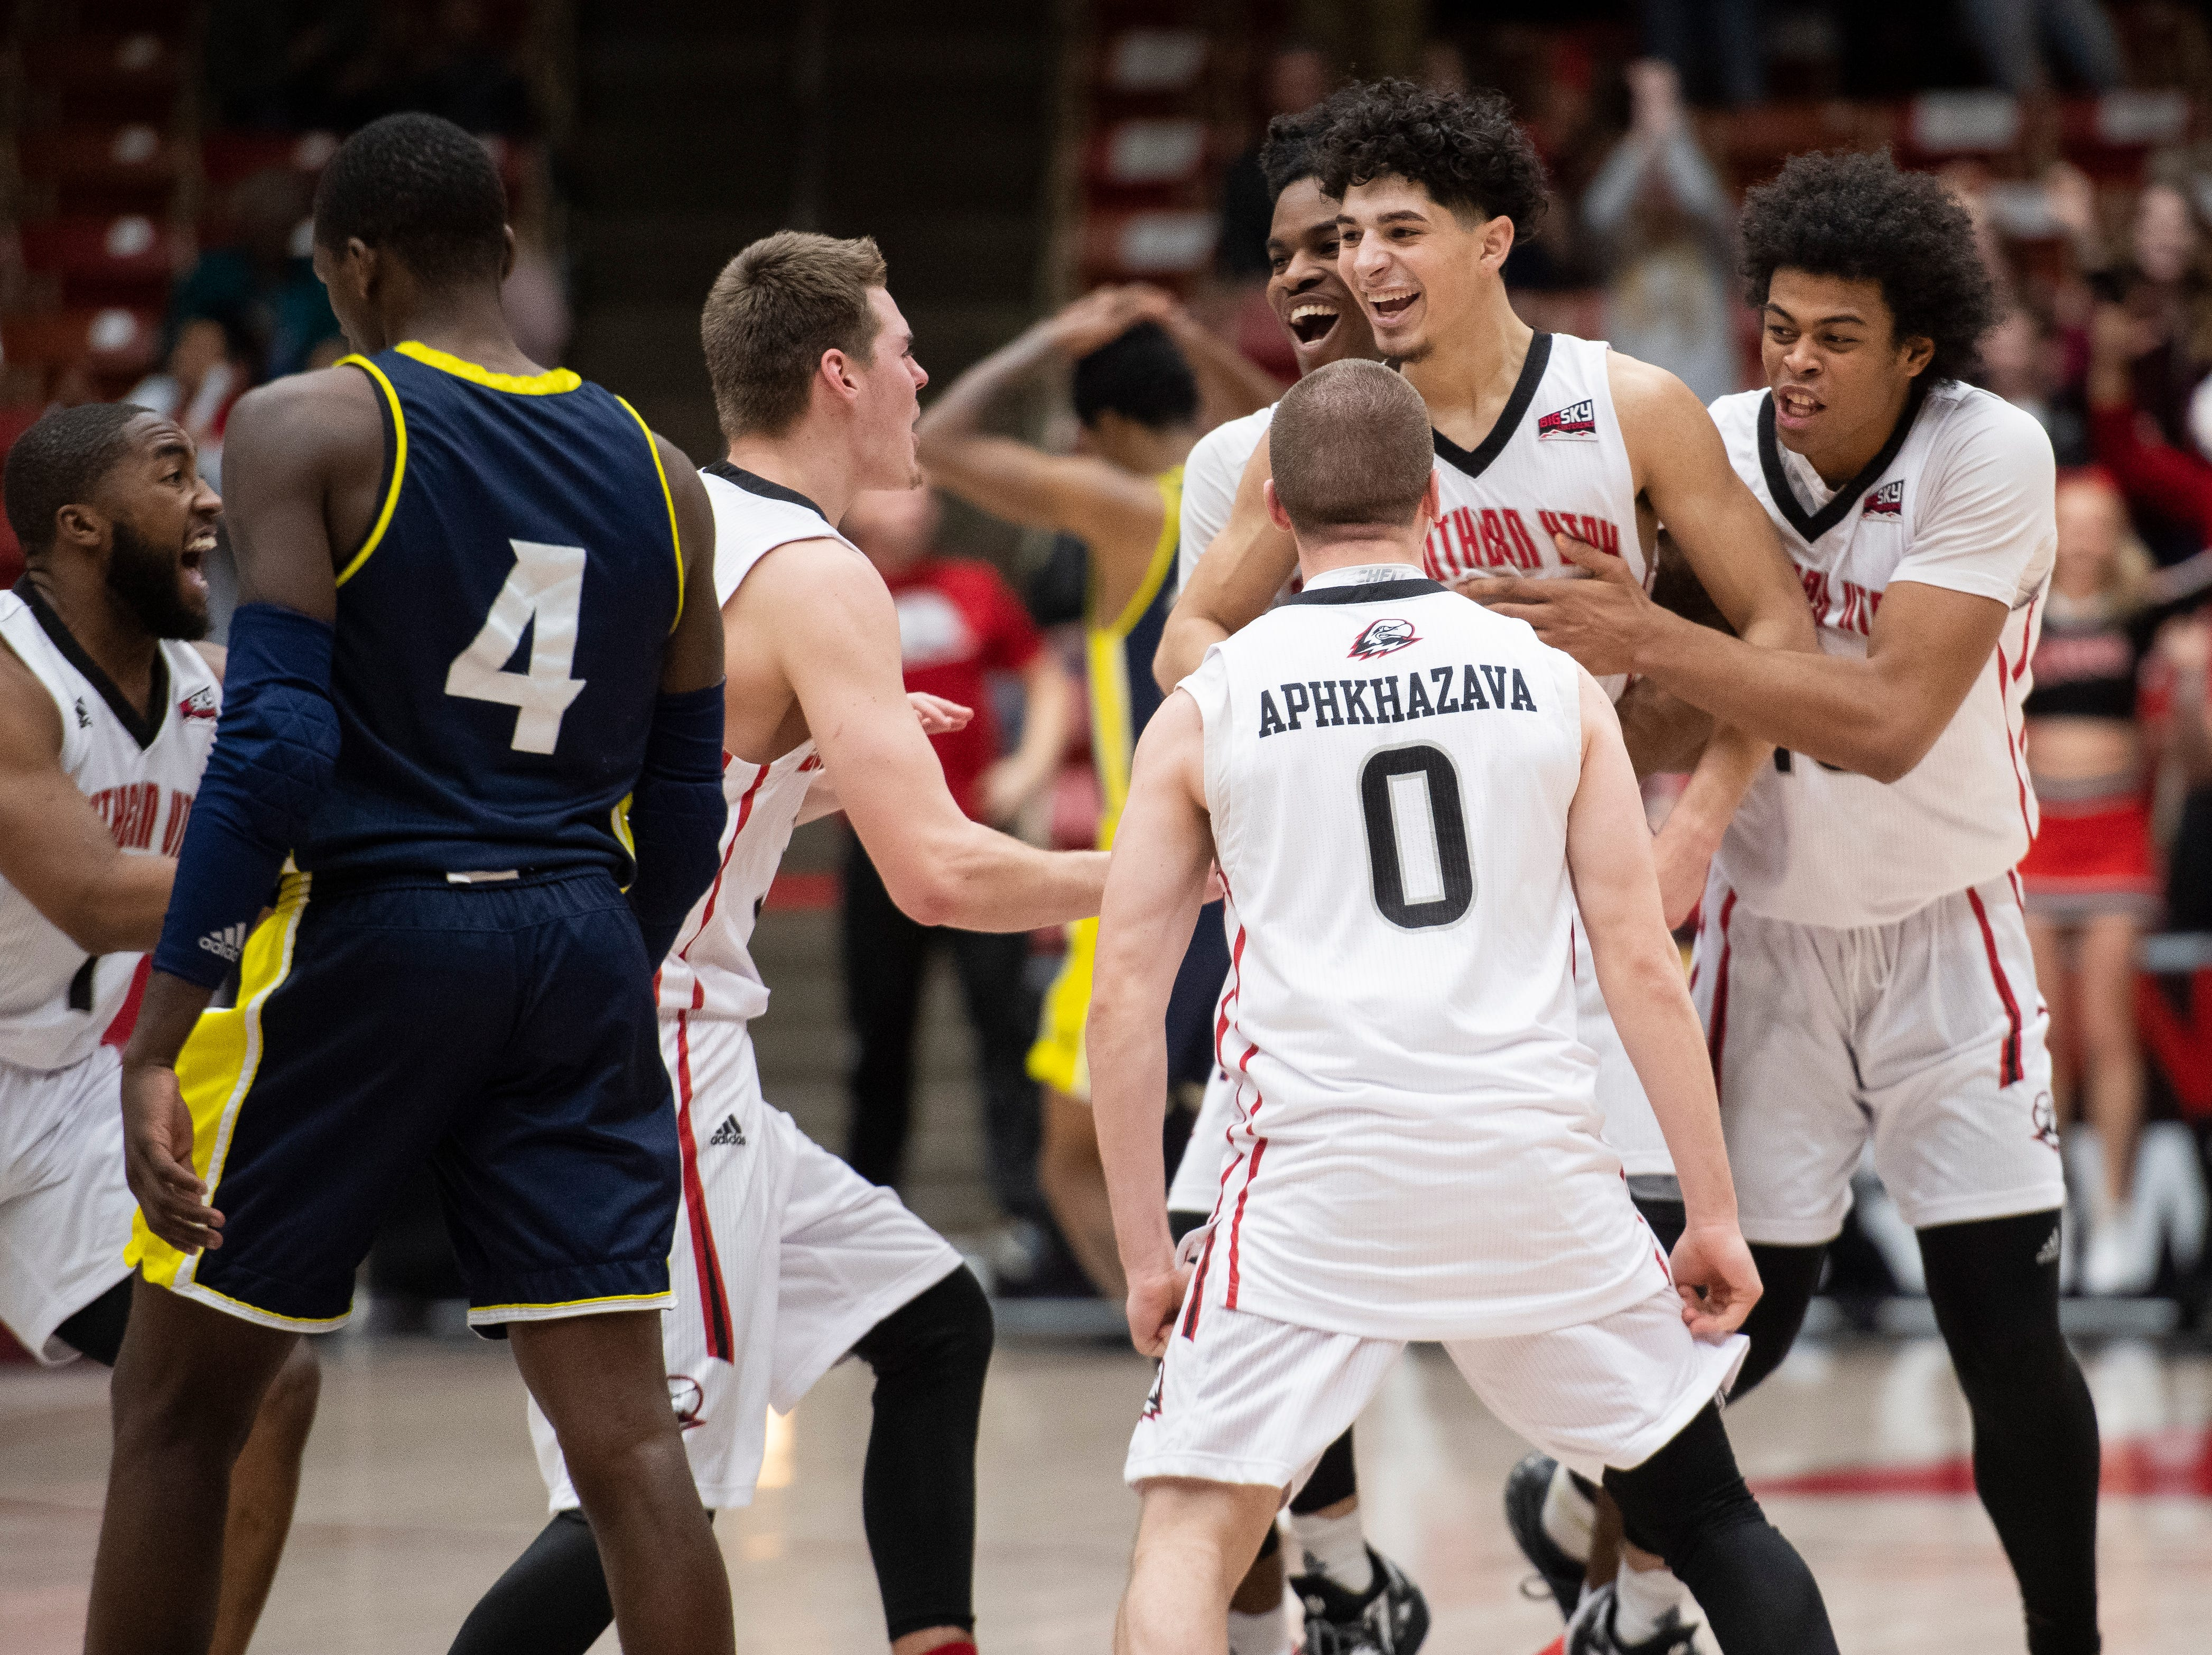 Southern Utah University celebrates a buzzer-beating win against rival Northern Arizona at the America First Event Center Saturday, January 12, 2019. SUU won, 84-82.